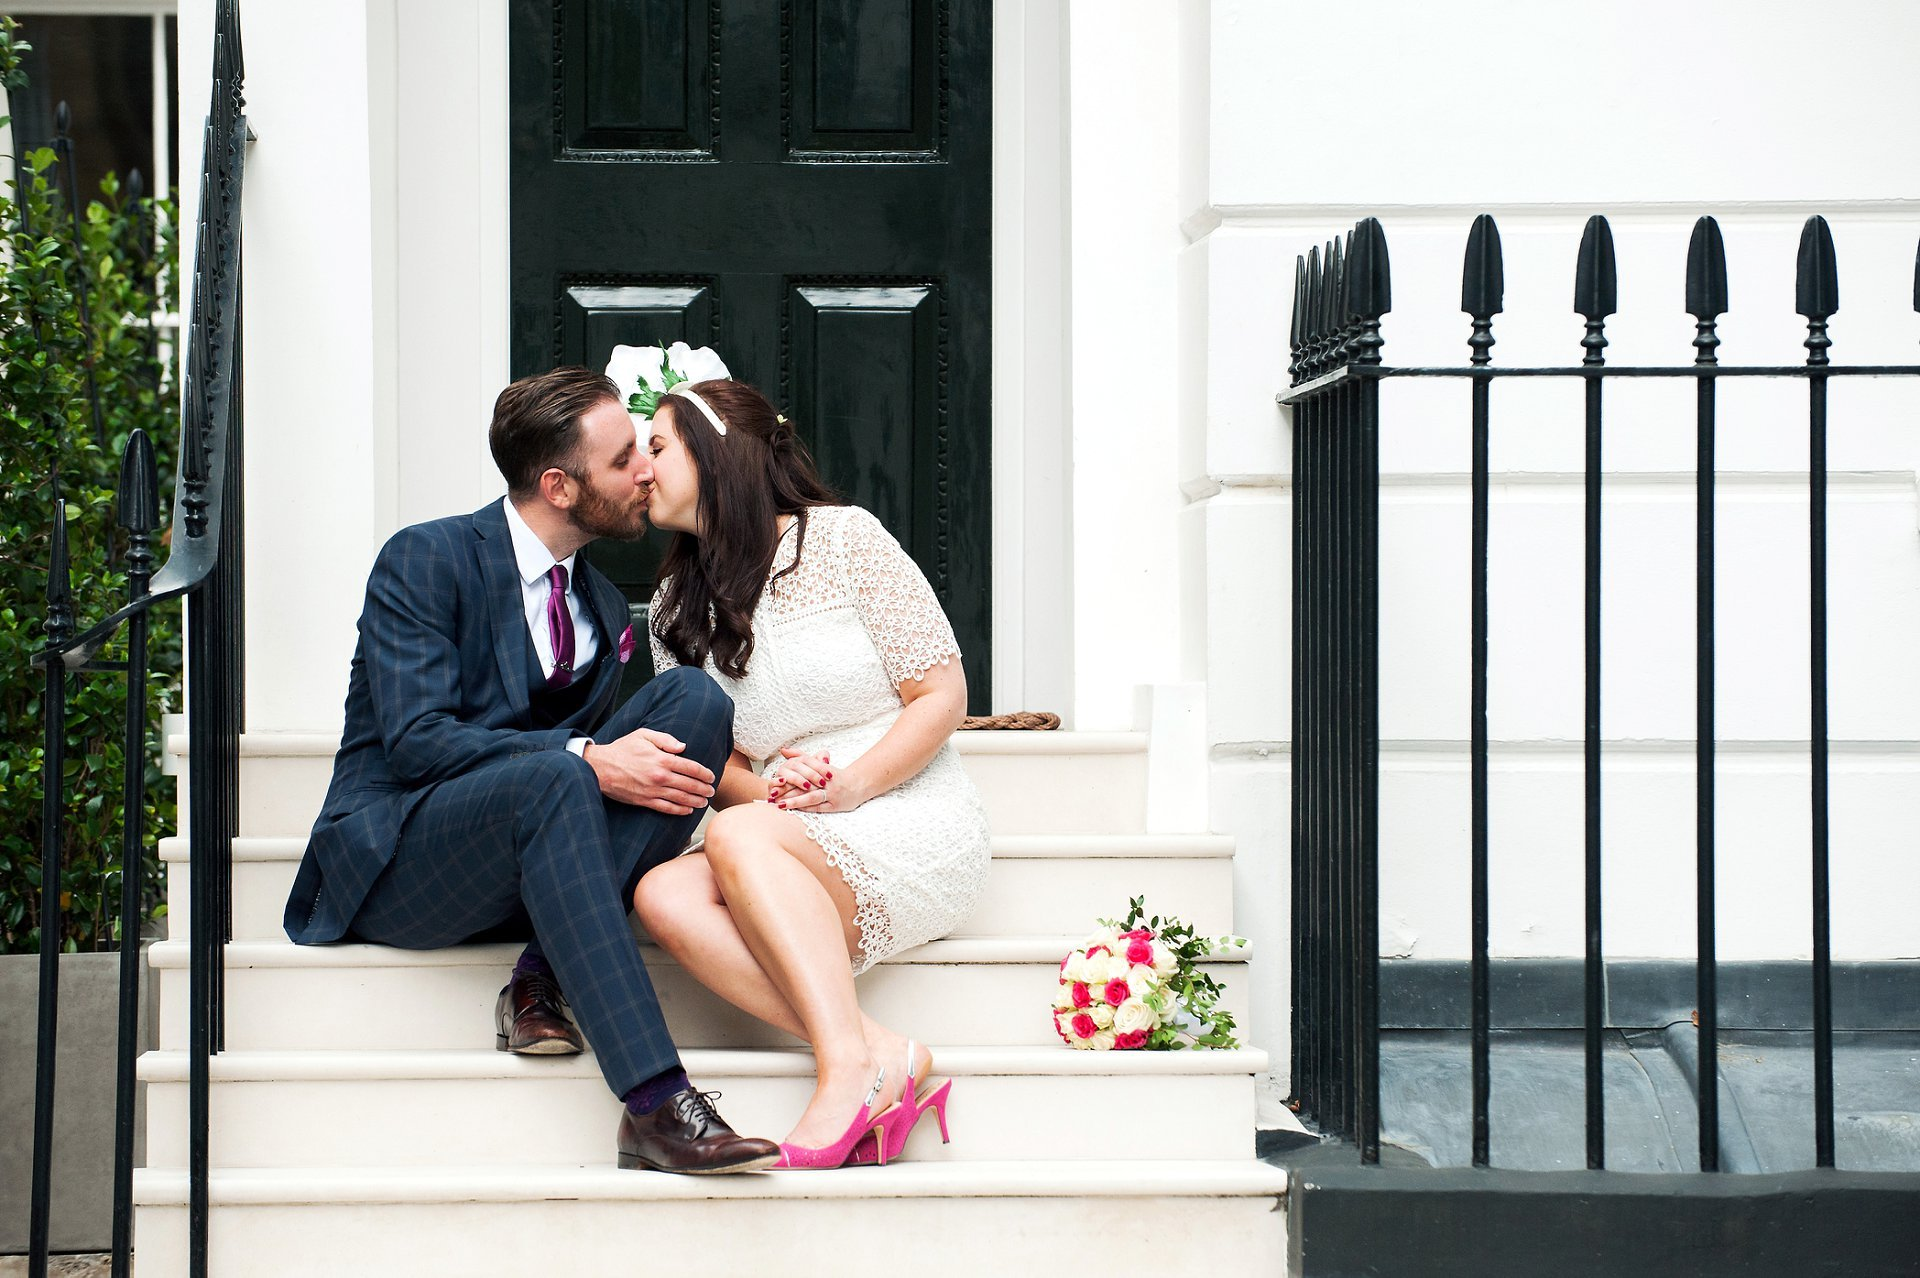 Chelsea wedding photographer, Emma Duggan, photographs this bride and groom on a Chelsea step as they kiss